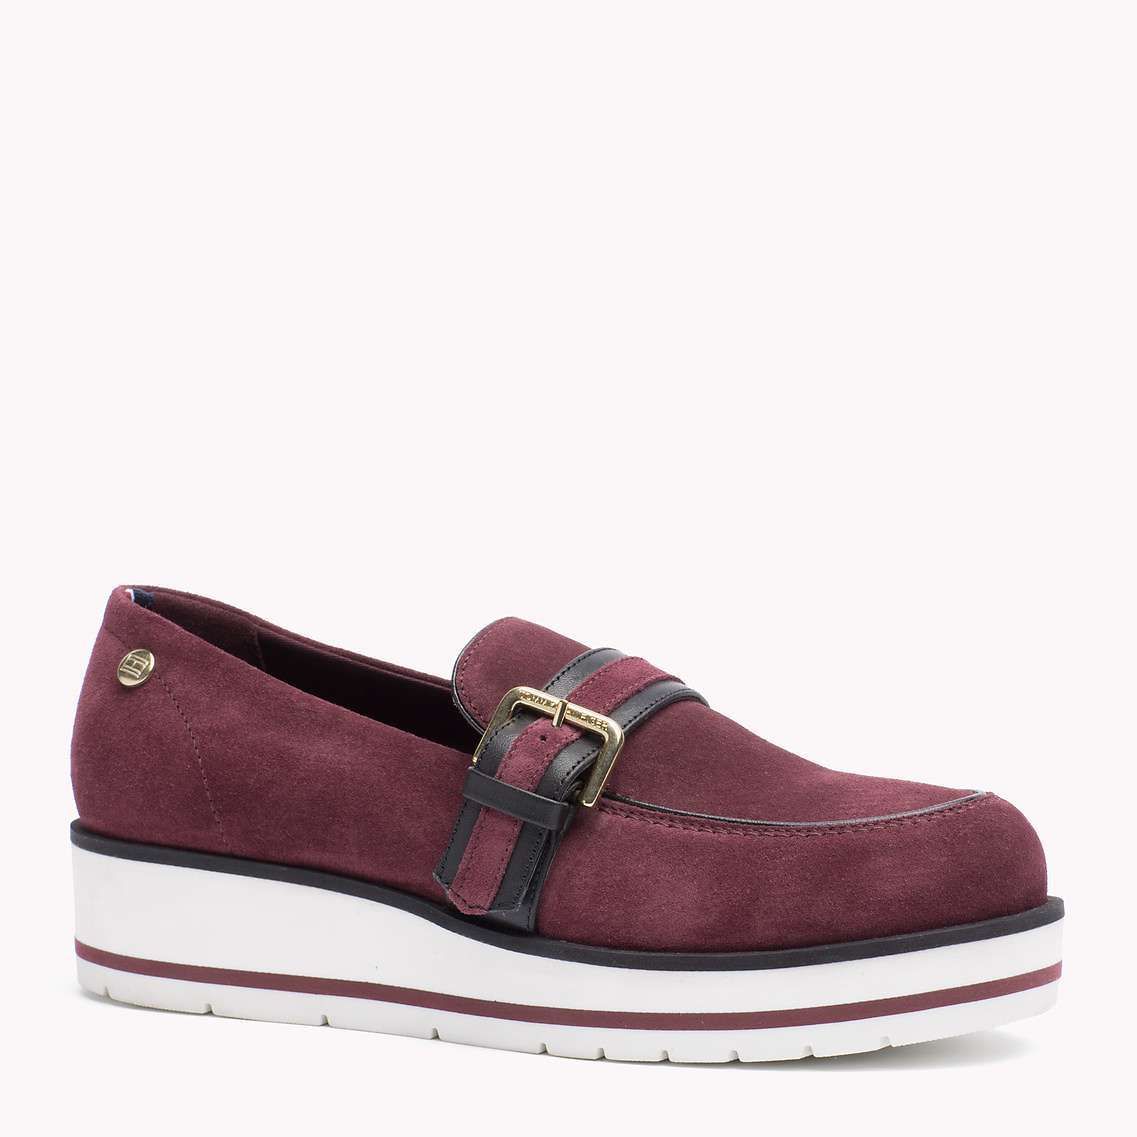 Mocassini in suede bordeaux